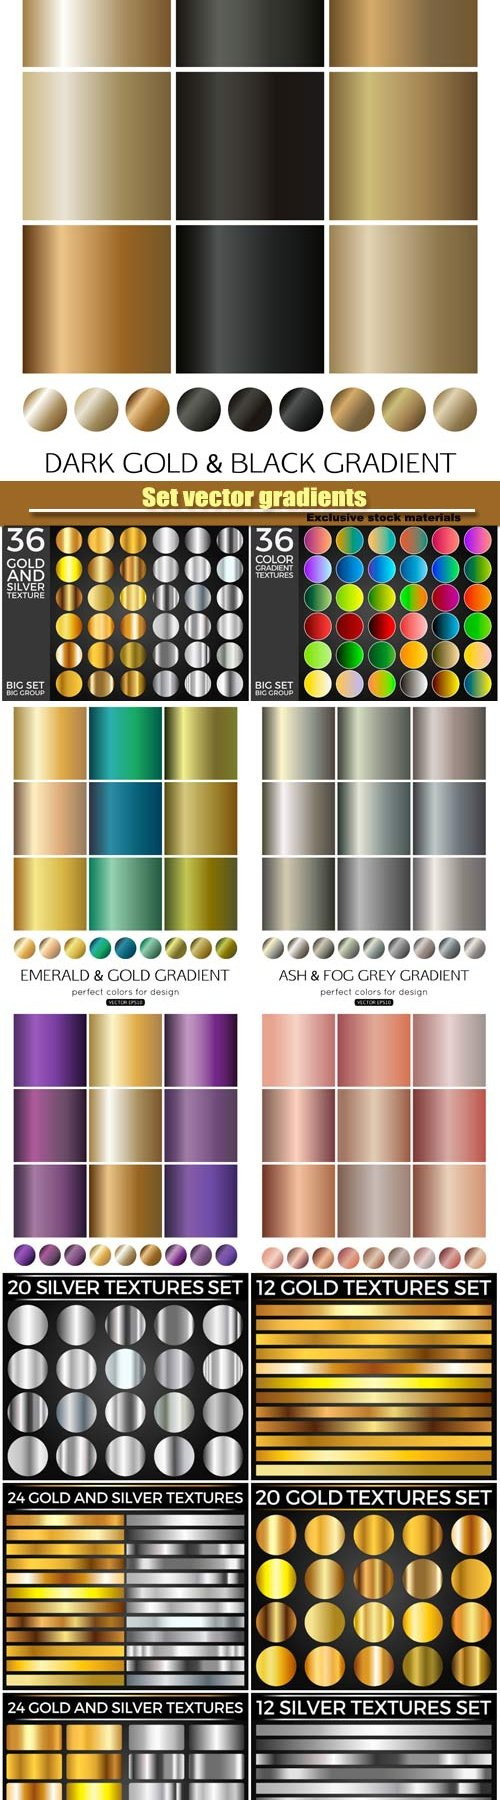 Set vector gradients, gold gradients for fashion background